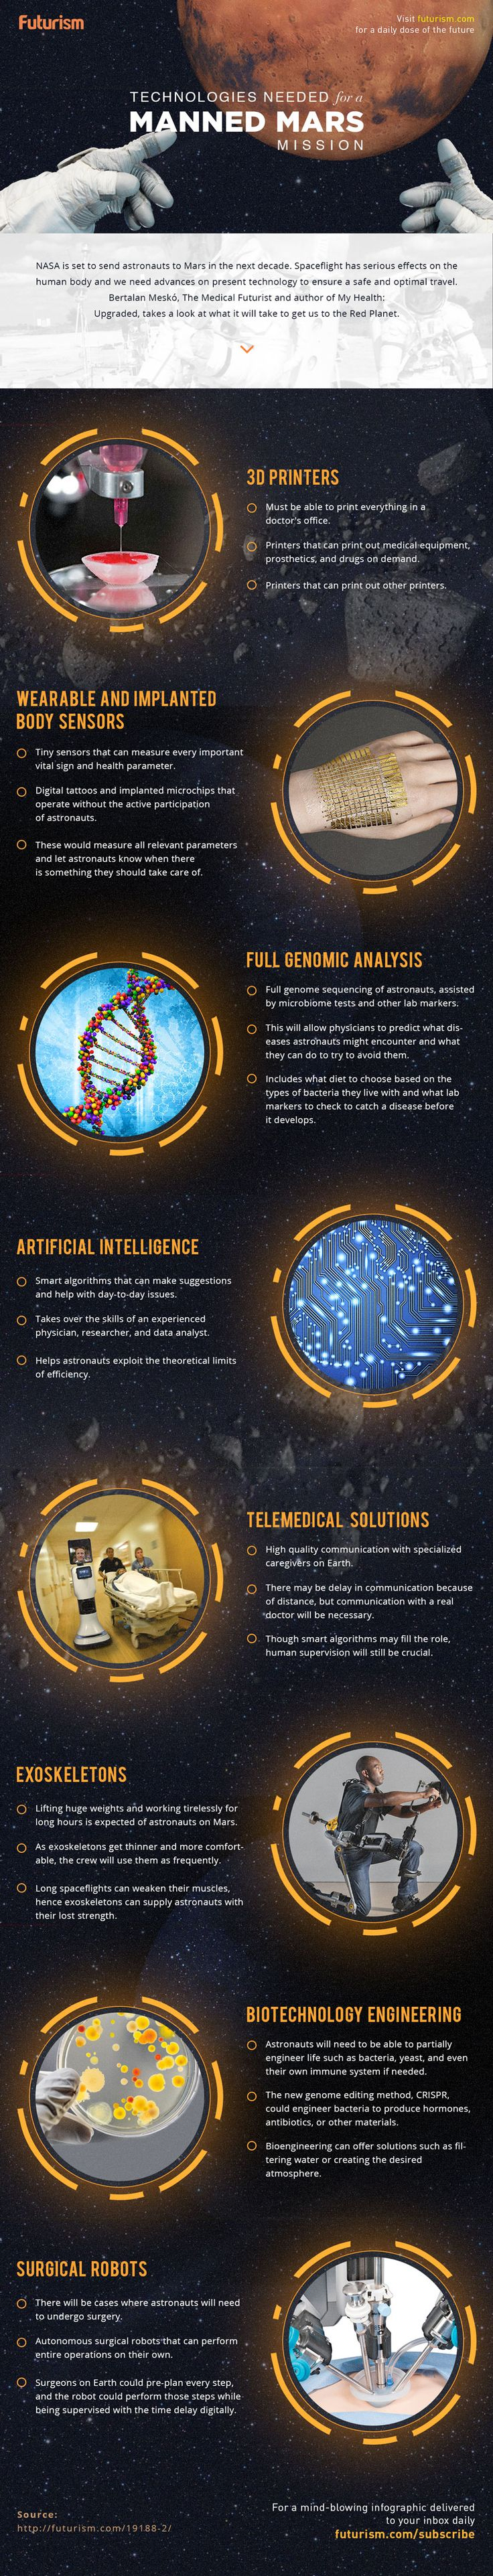 In order to get humanity to the Red Planet, first, we will need to ensure that we have these technologies.(manned mars mission technologies)